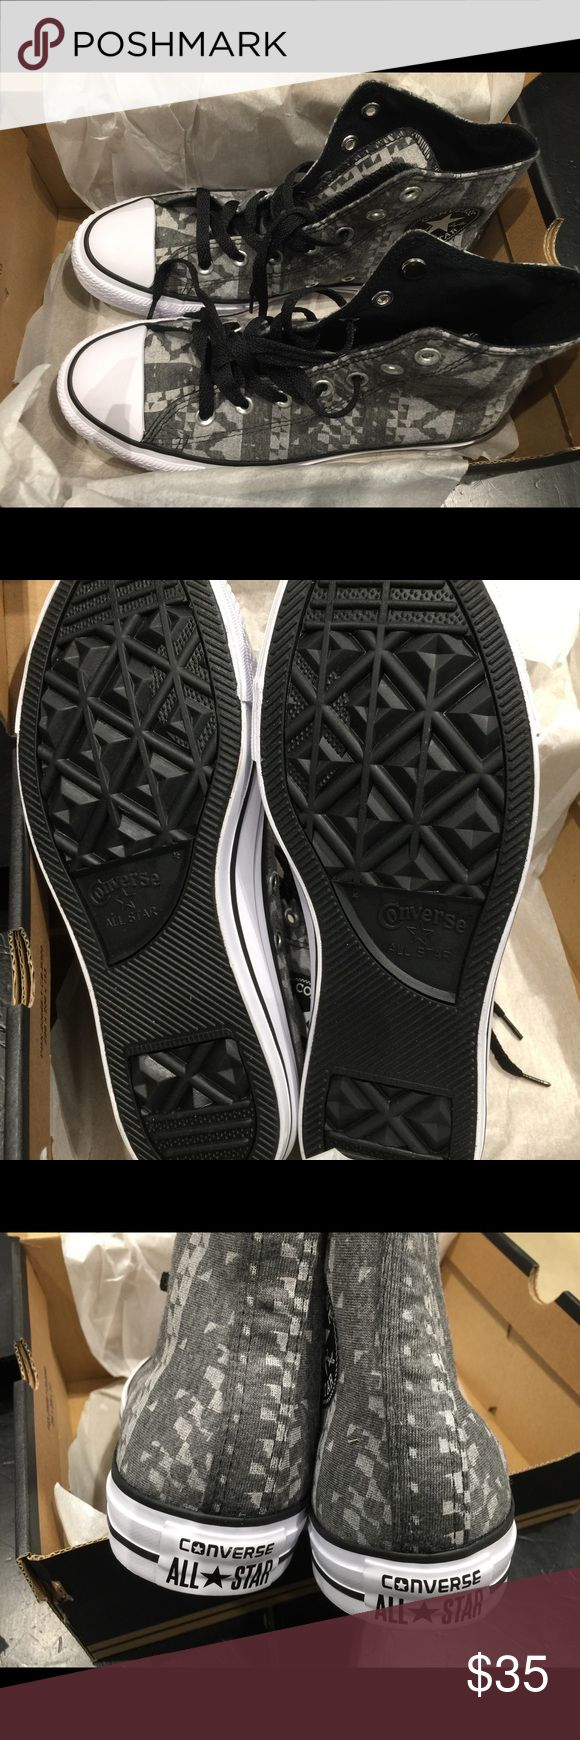 💕ONE HOUR QUICK SALE💕Converse CT HI BLACK/white Brand New in box. Converse Chuck Taylor 549650c Converse Shoes Sneakers